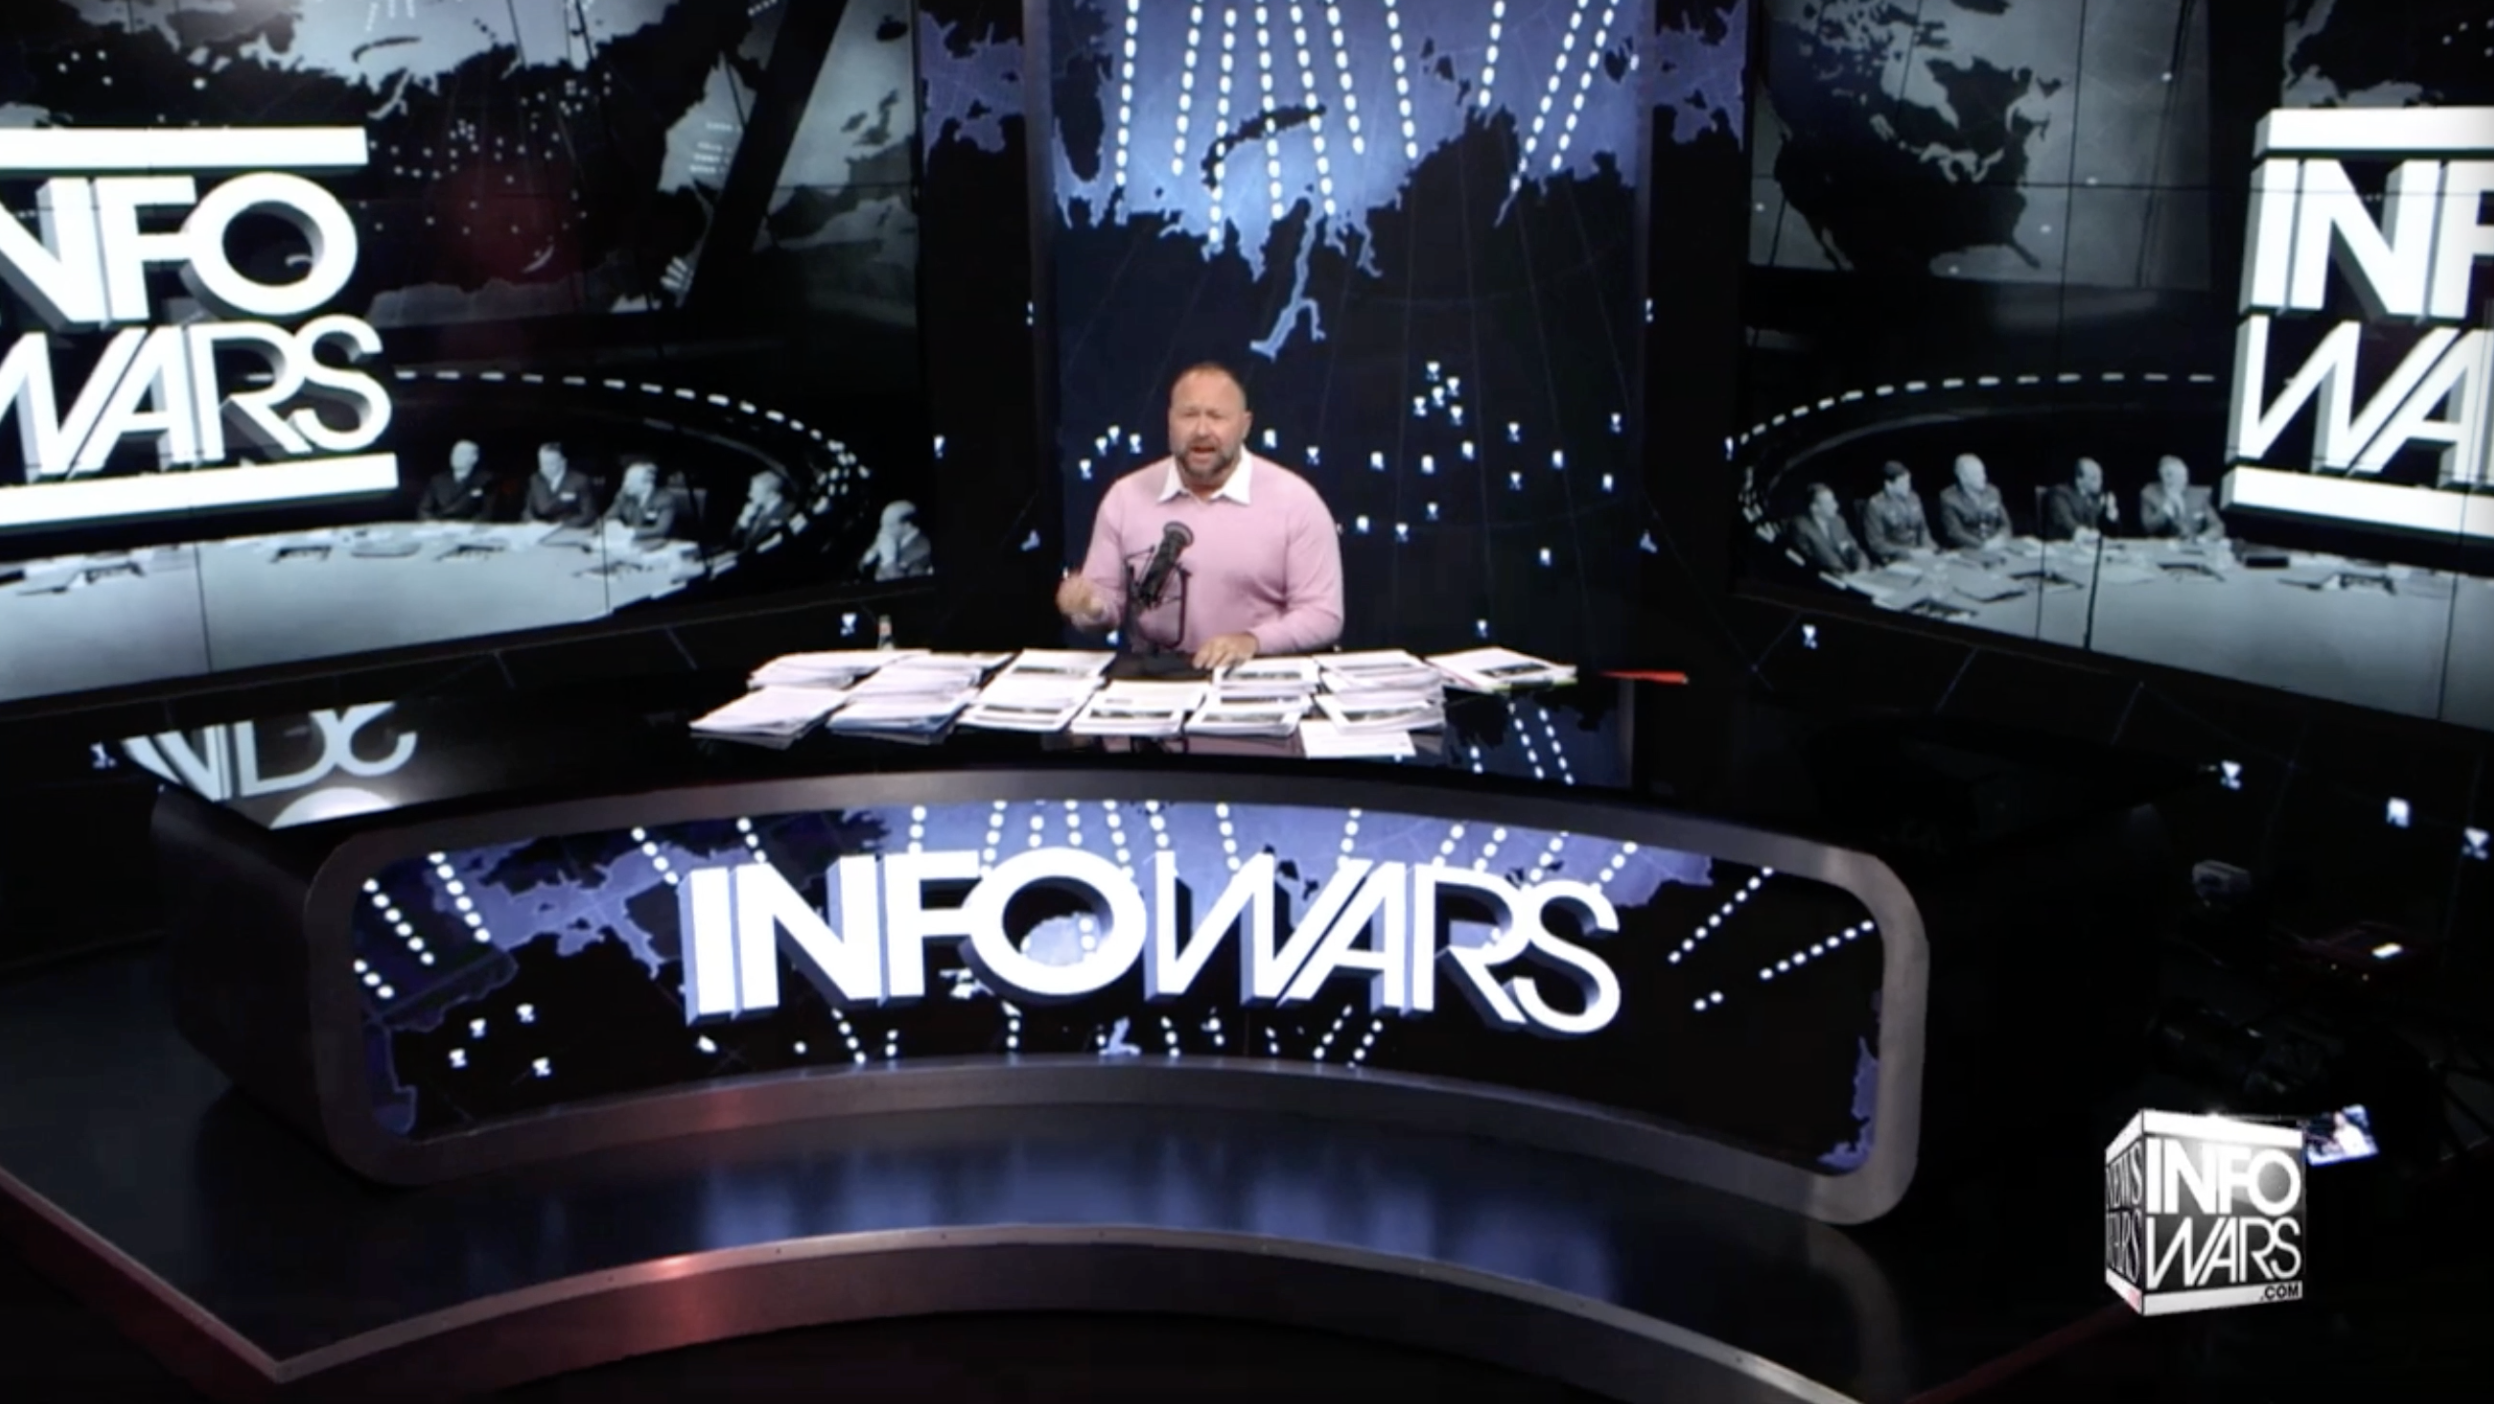 Alex Jones Infowars Pink shirt 5 11 2020